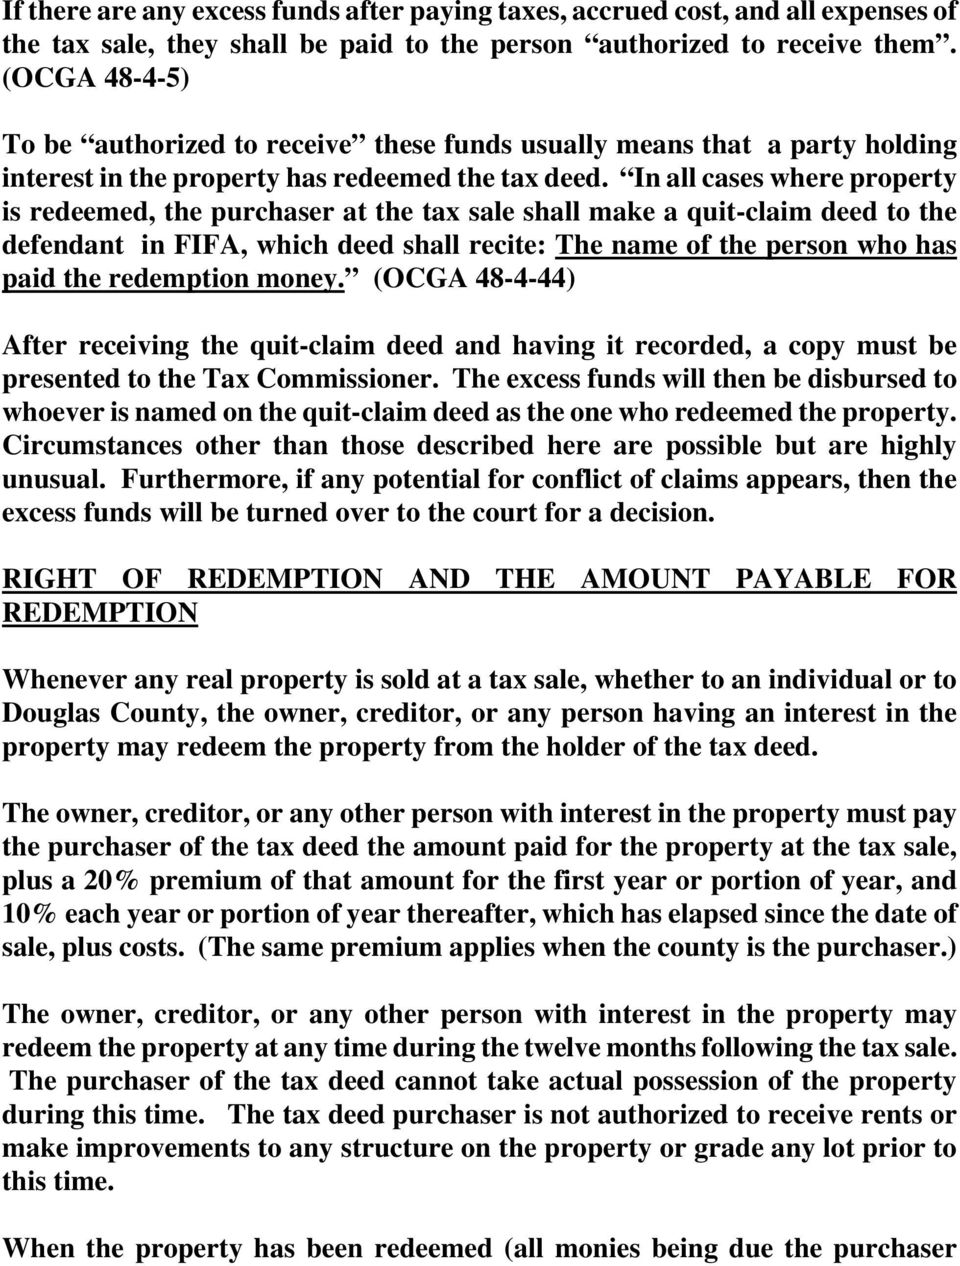 In all cases where property is redeemed, the purchaser at the tax sale shall make a quit-claim deed to the defendant in FIFA, which deed shall recite: The name of the person who has paid the